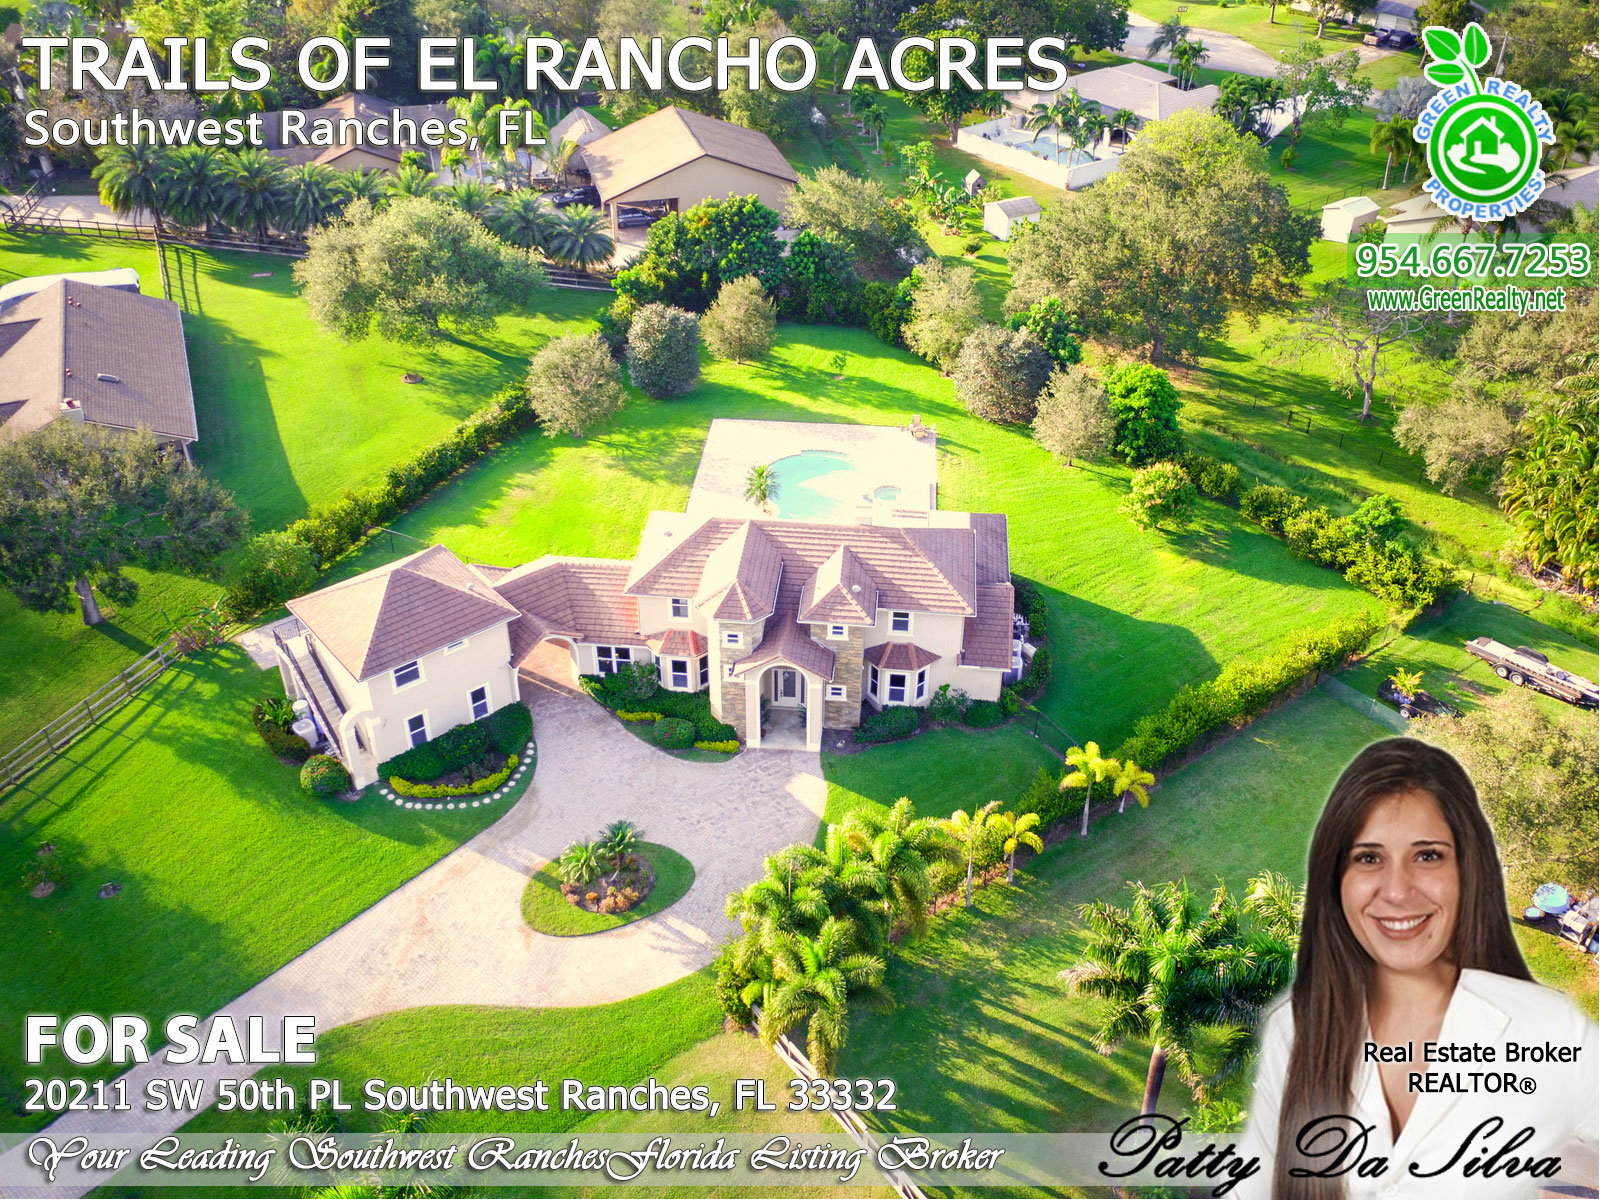 southwest-ranches-south-florida-homes-for-sale-by-patty-da-silva-of-green-realty-properties